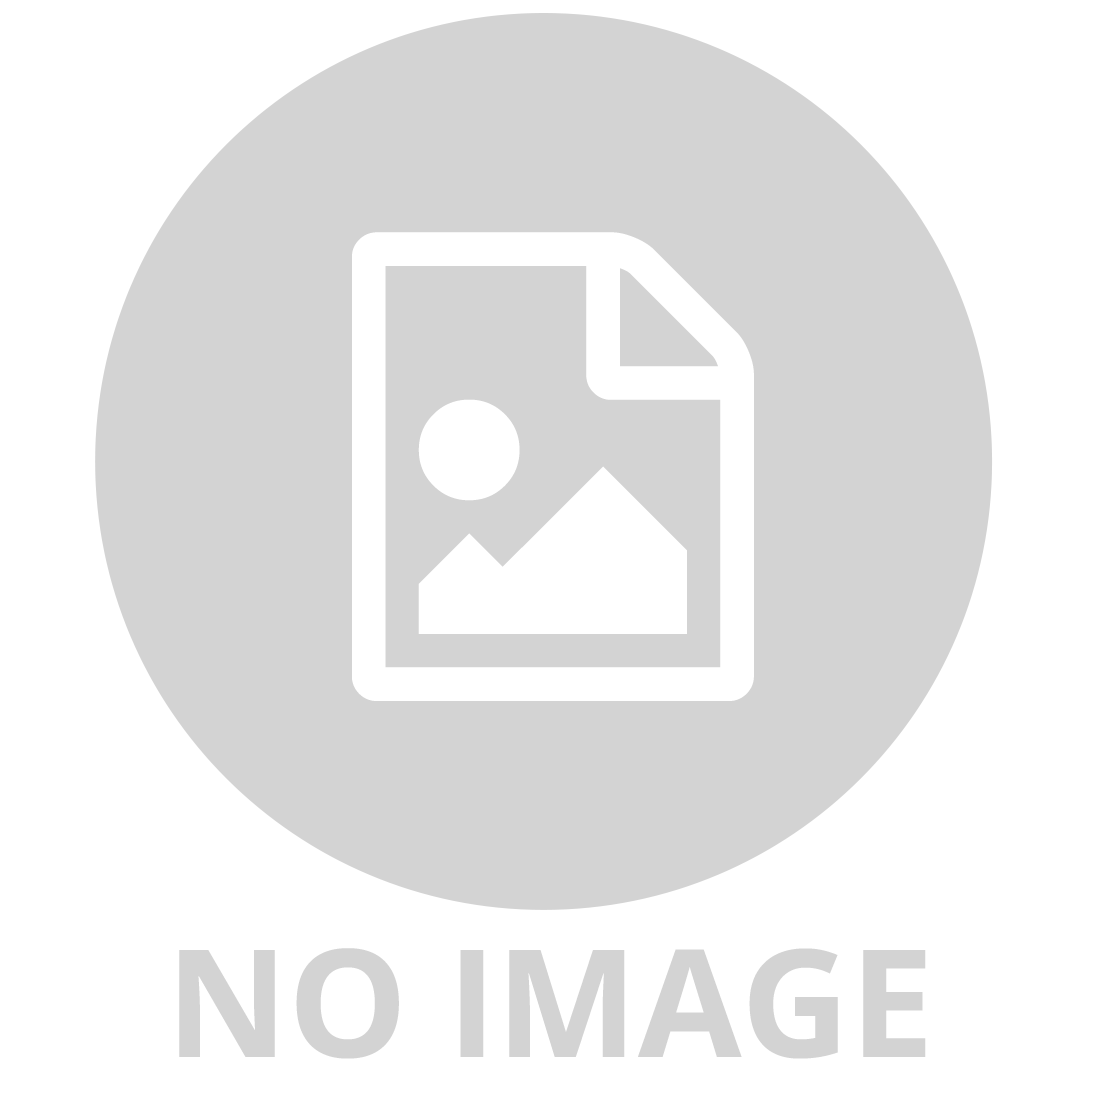 PINK STRIPED UMBRELLA STROLLER